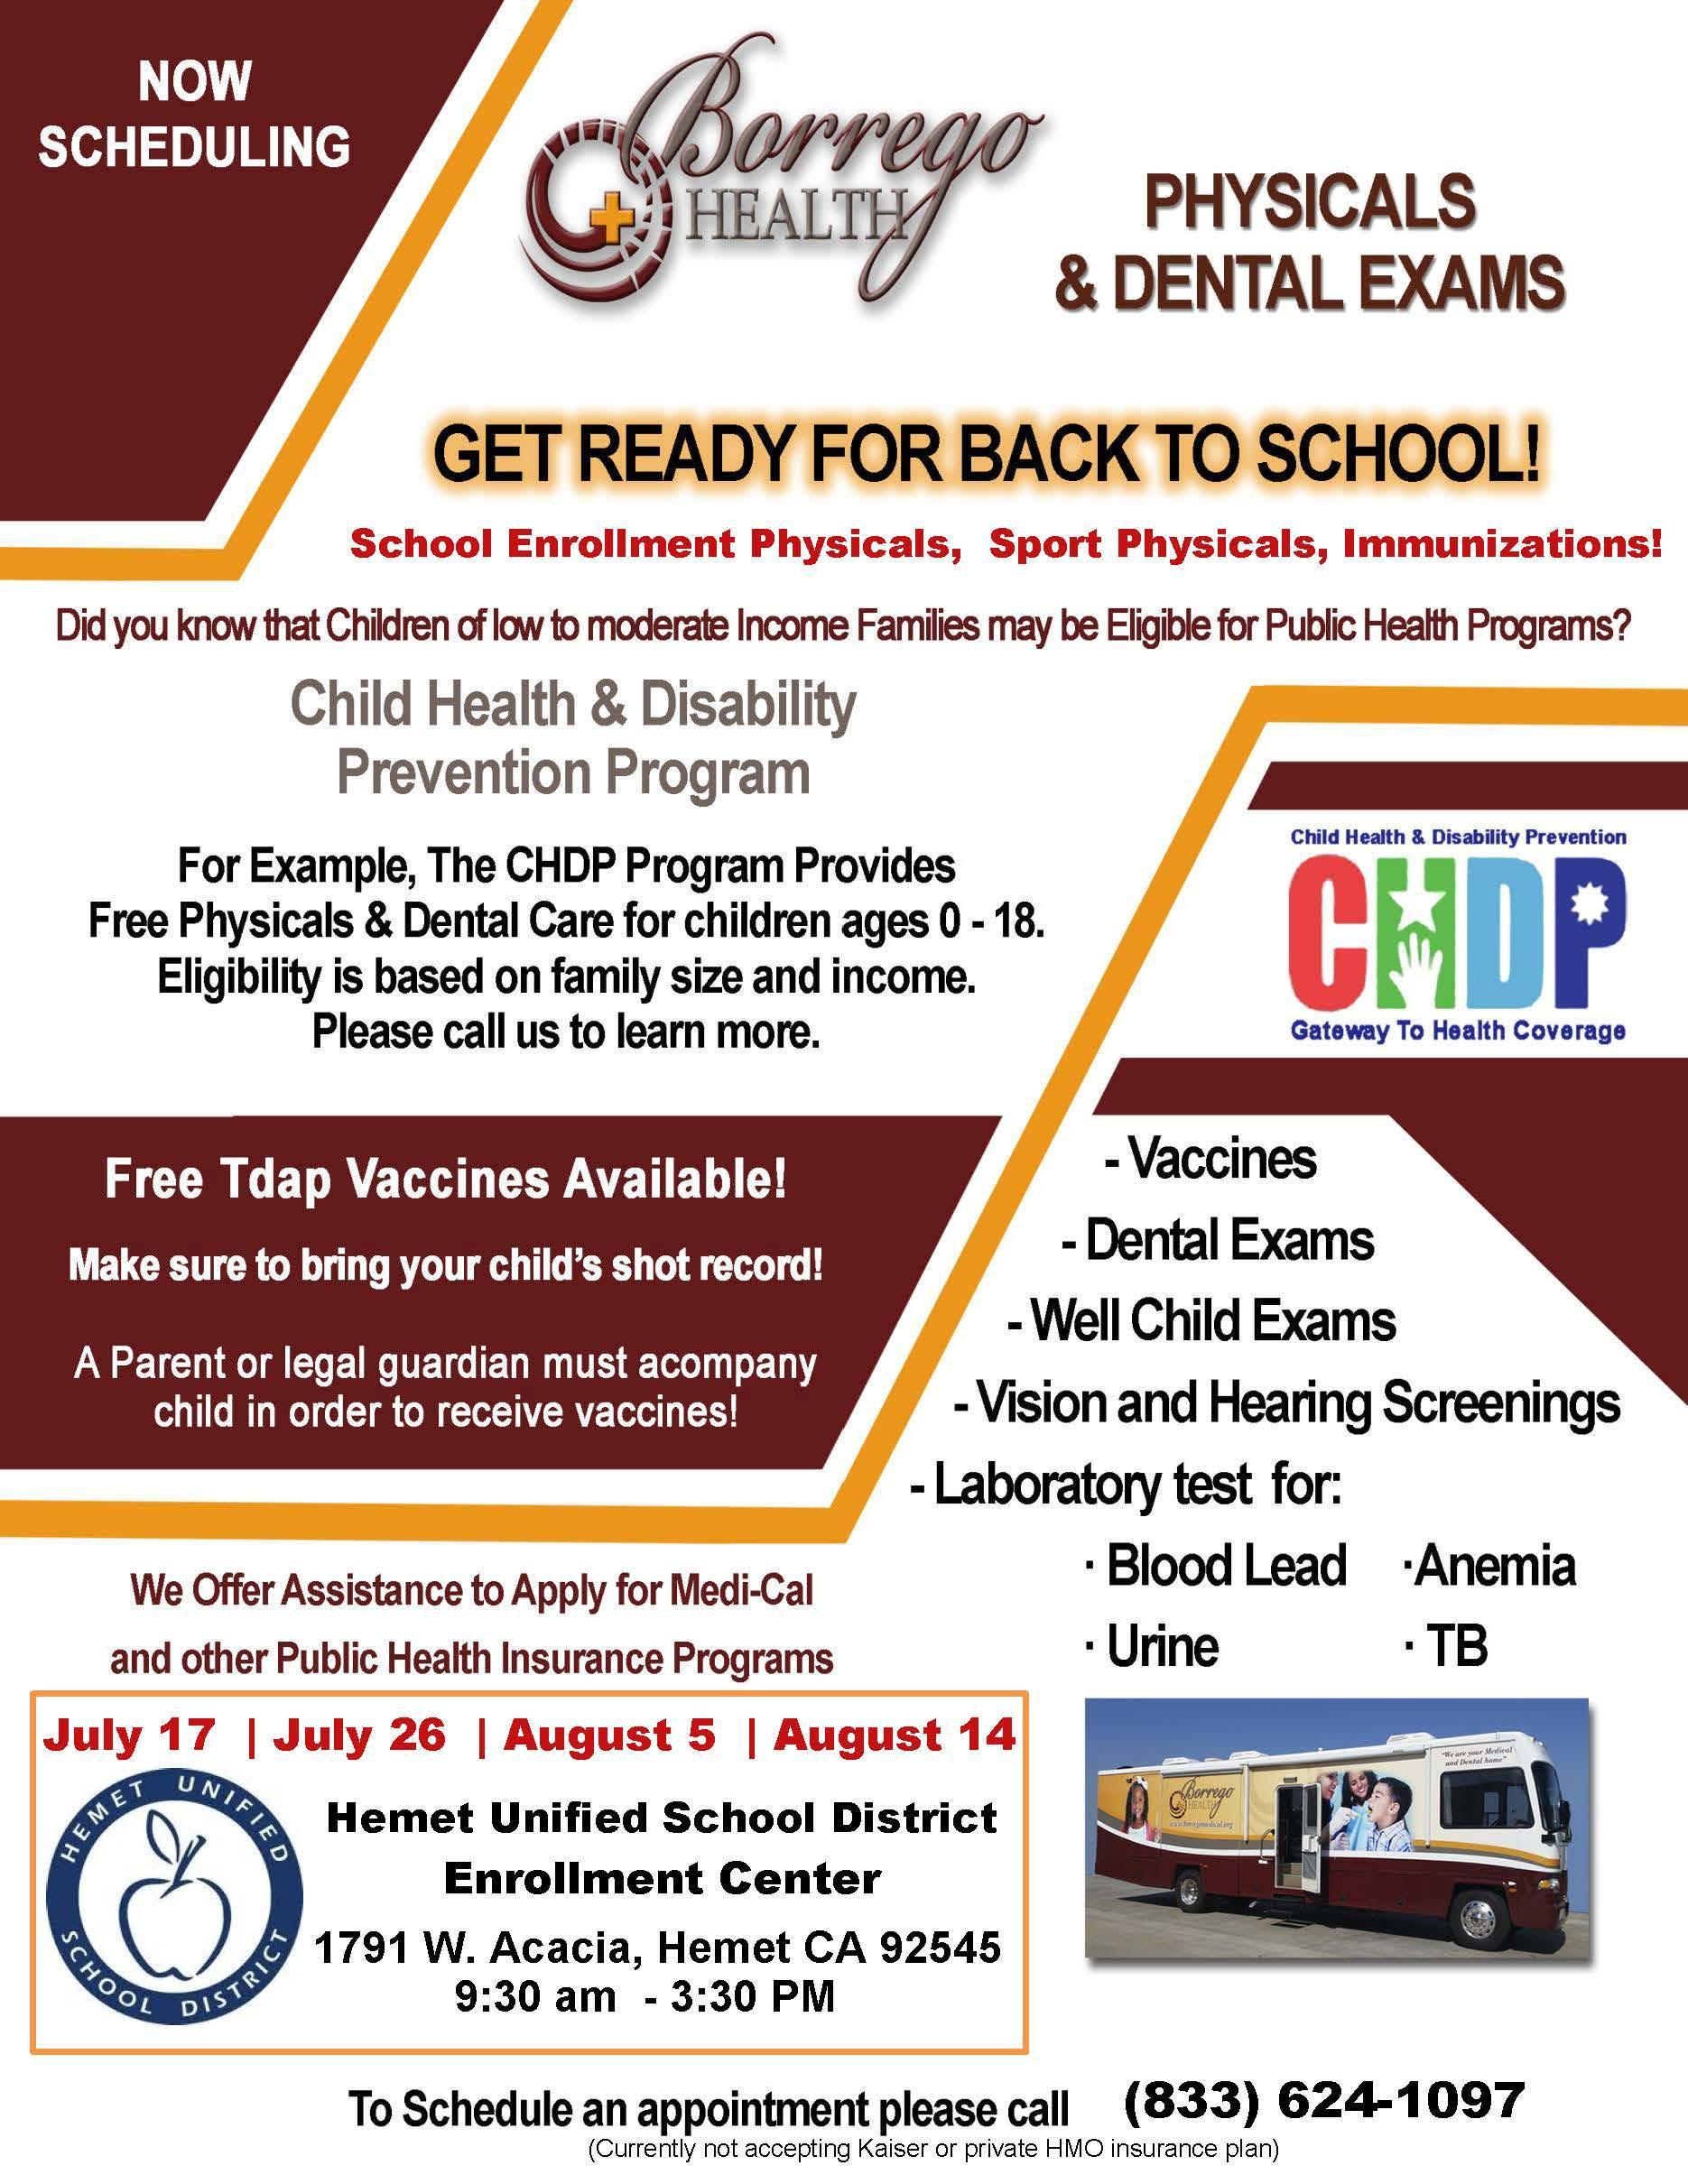 July 17 | July 26 | August 5 | August 14 (833) 624-1097 School Enrollment Physicals, Sport Physicals, Immunizations! (Currently not accepting Kaiser or private HMO insurance plan) Hemet Unified School District Enrollment Center 1791 W. Acacia, Hemet CA 92545